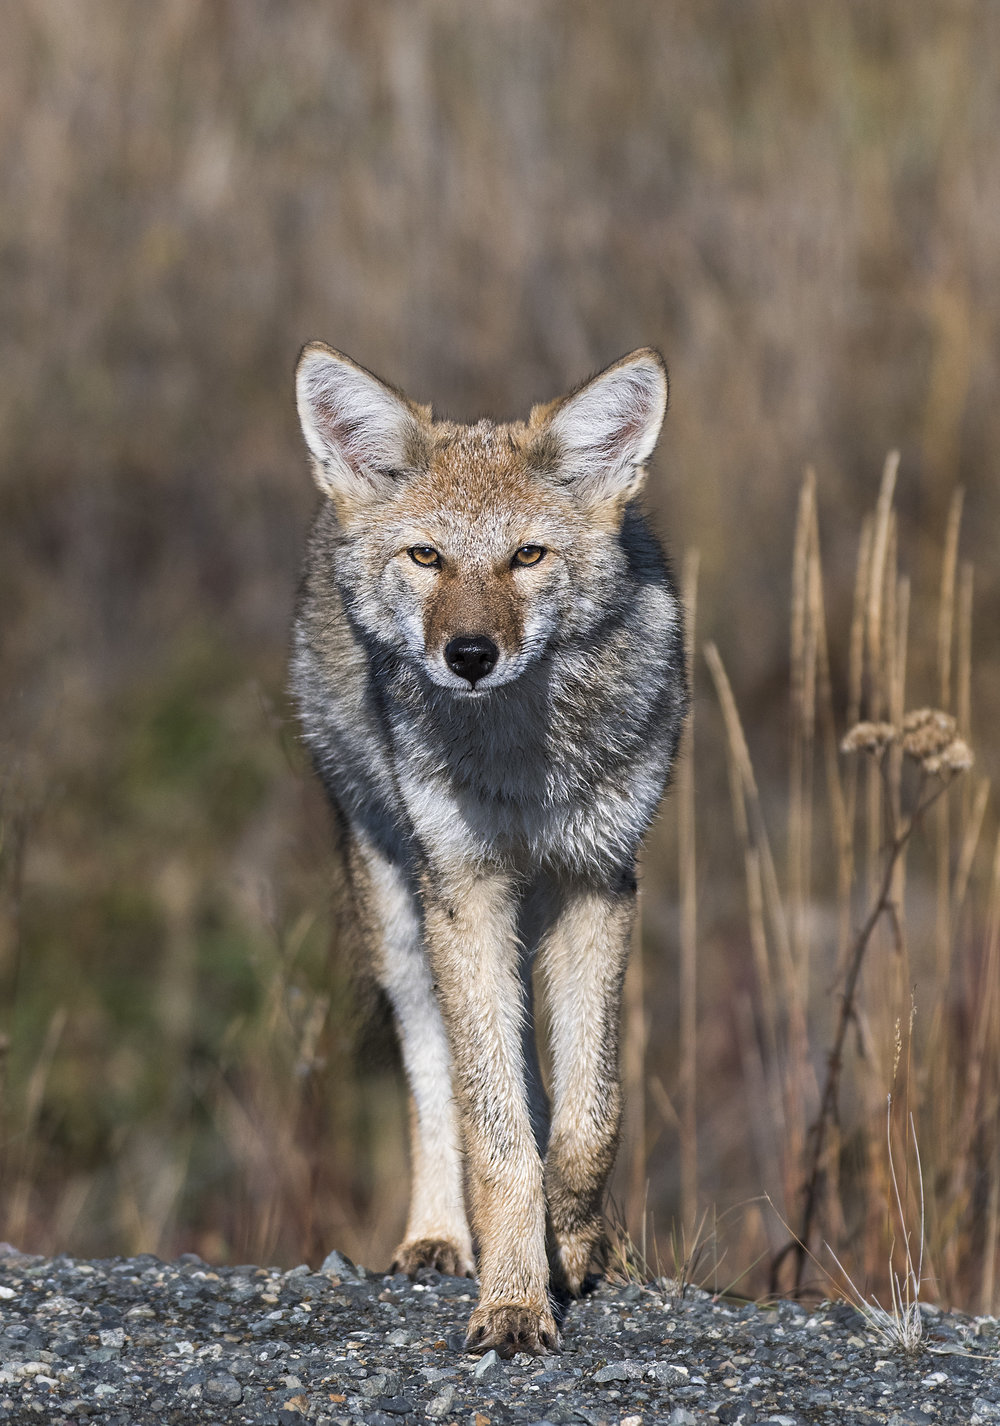 Coyote photography workshops